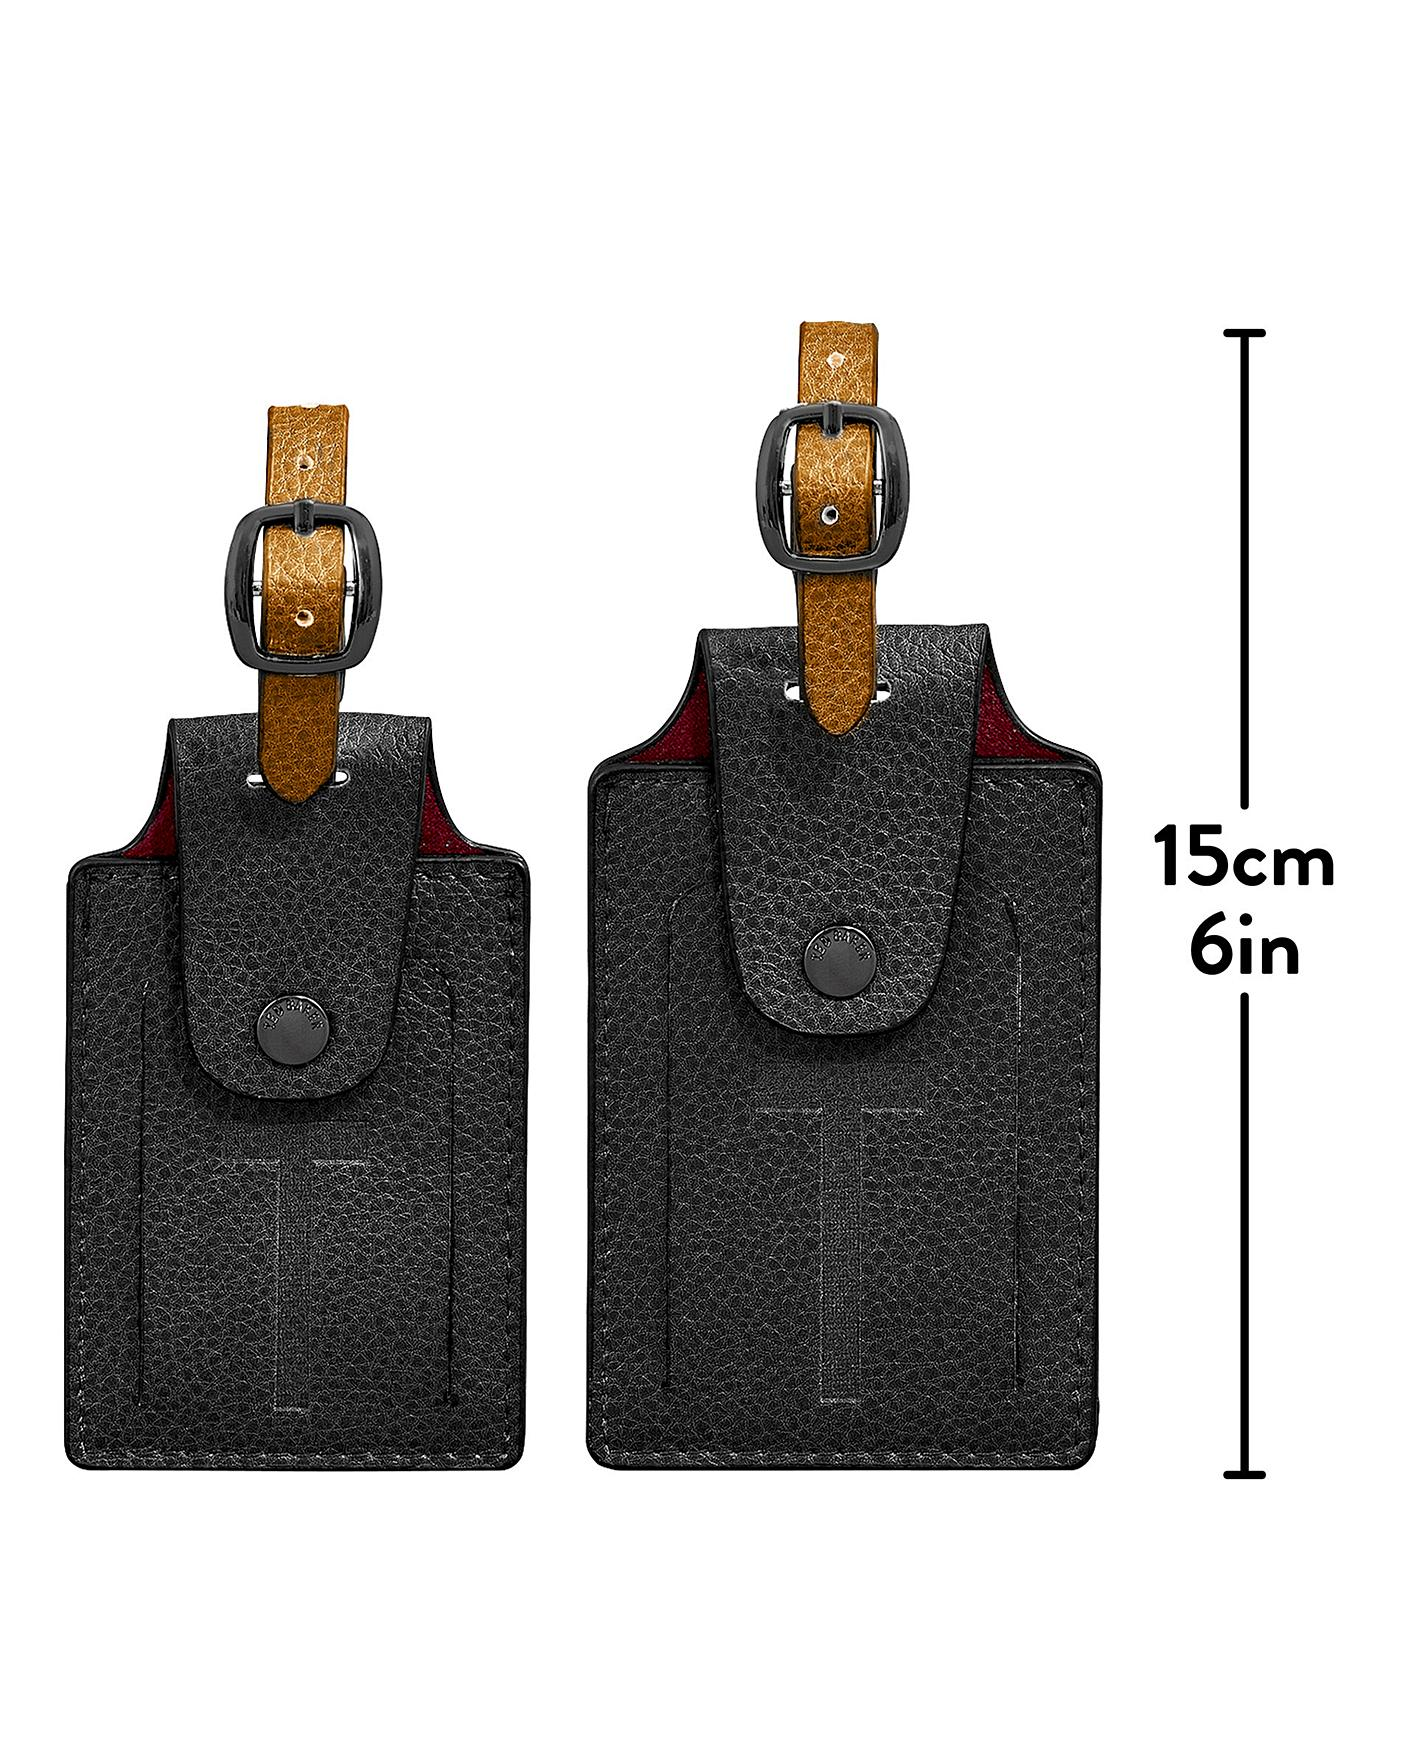 official shop clearance prices buying cheap Ted Baker Luggage Tag set of 2